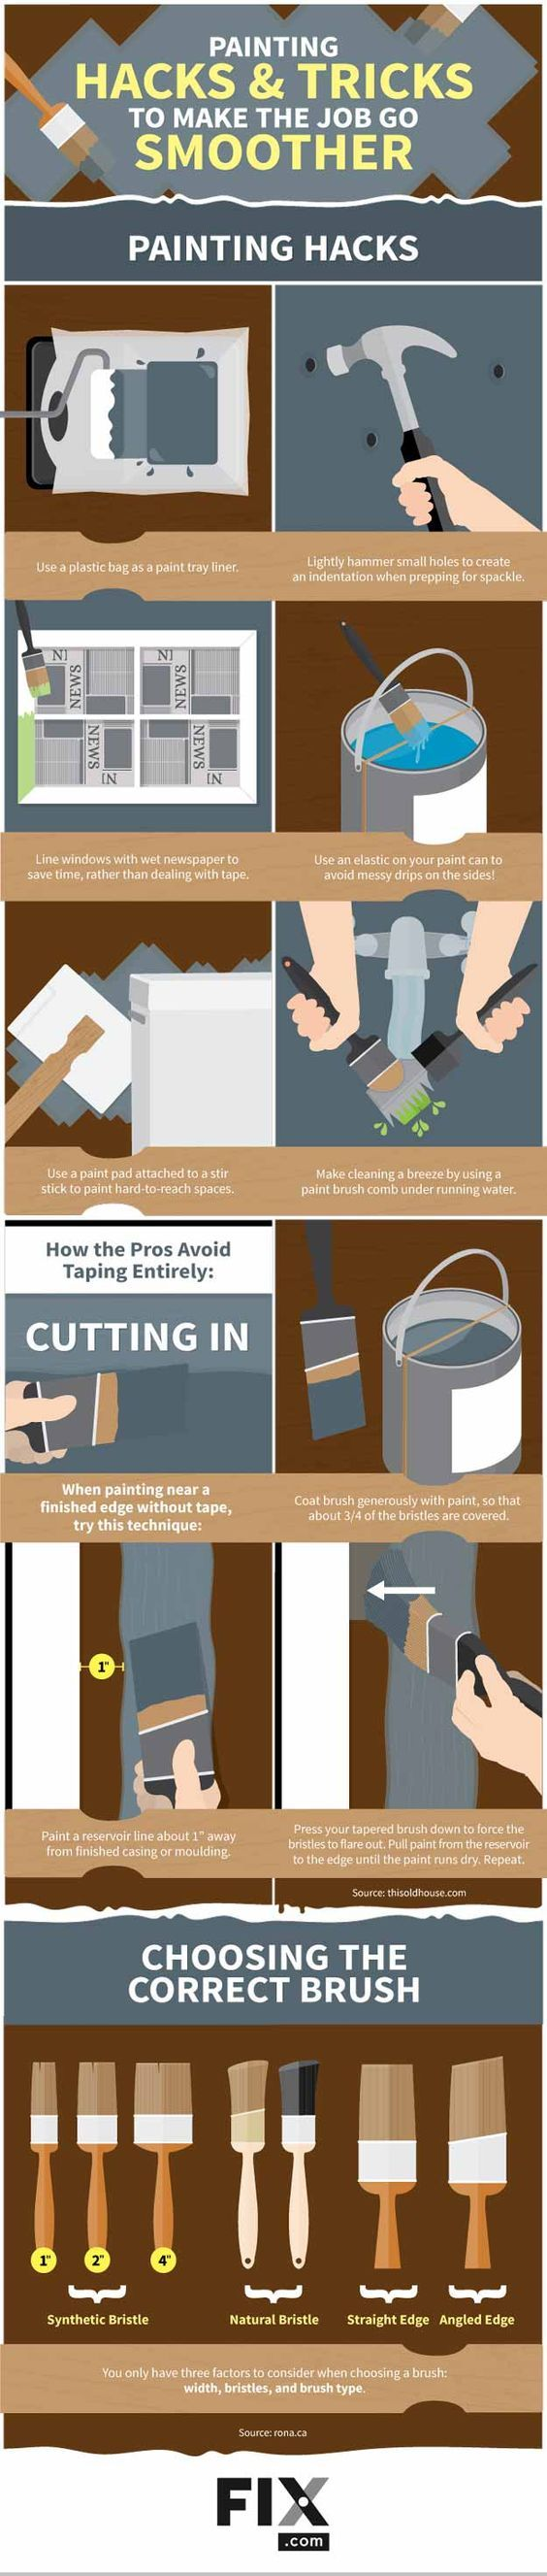 PAINTING TIPS AND TRICKS [INFOGRAPHIC] Save yourself the pains of sloppy painting.   - See more at: https://www.aspirityenergy.com/home-ceo/painting-tips-and-tricks-infographic#sthash.vpCnXl3P.dpuf